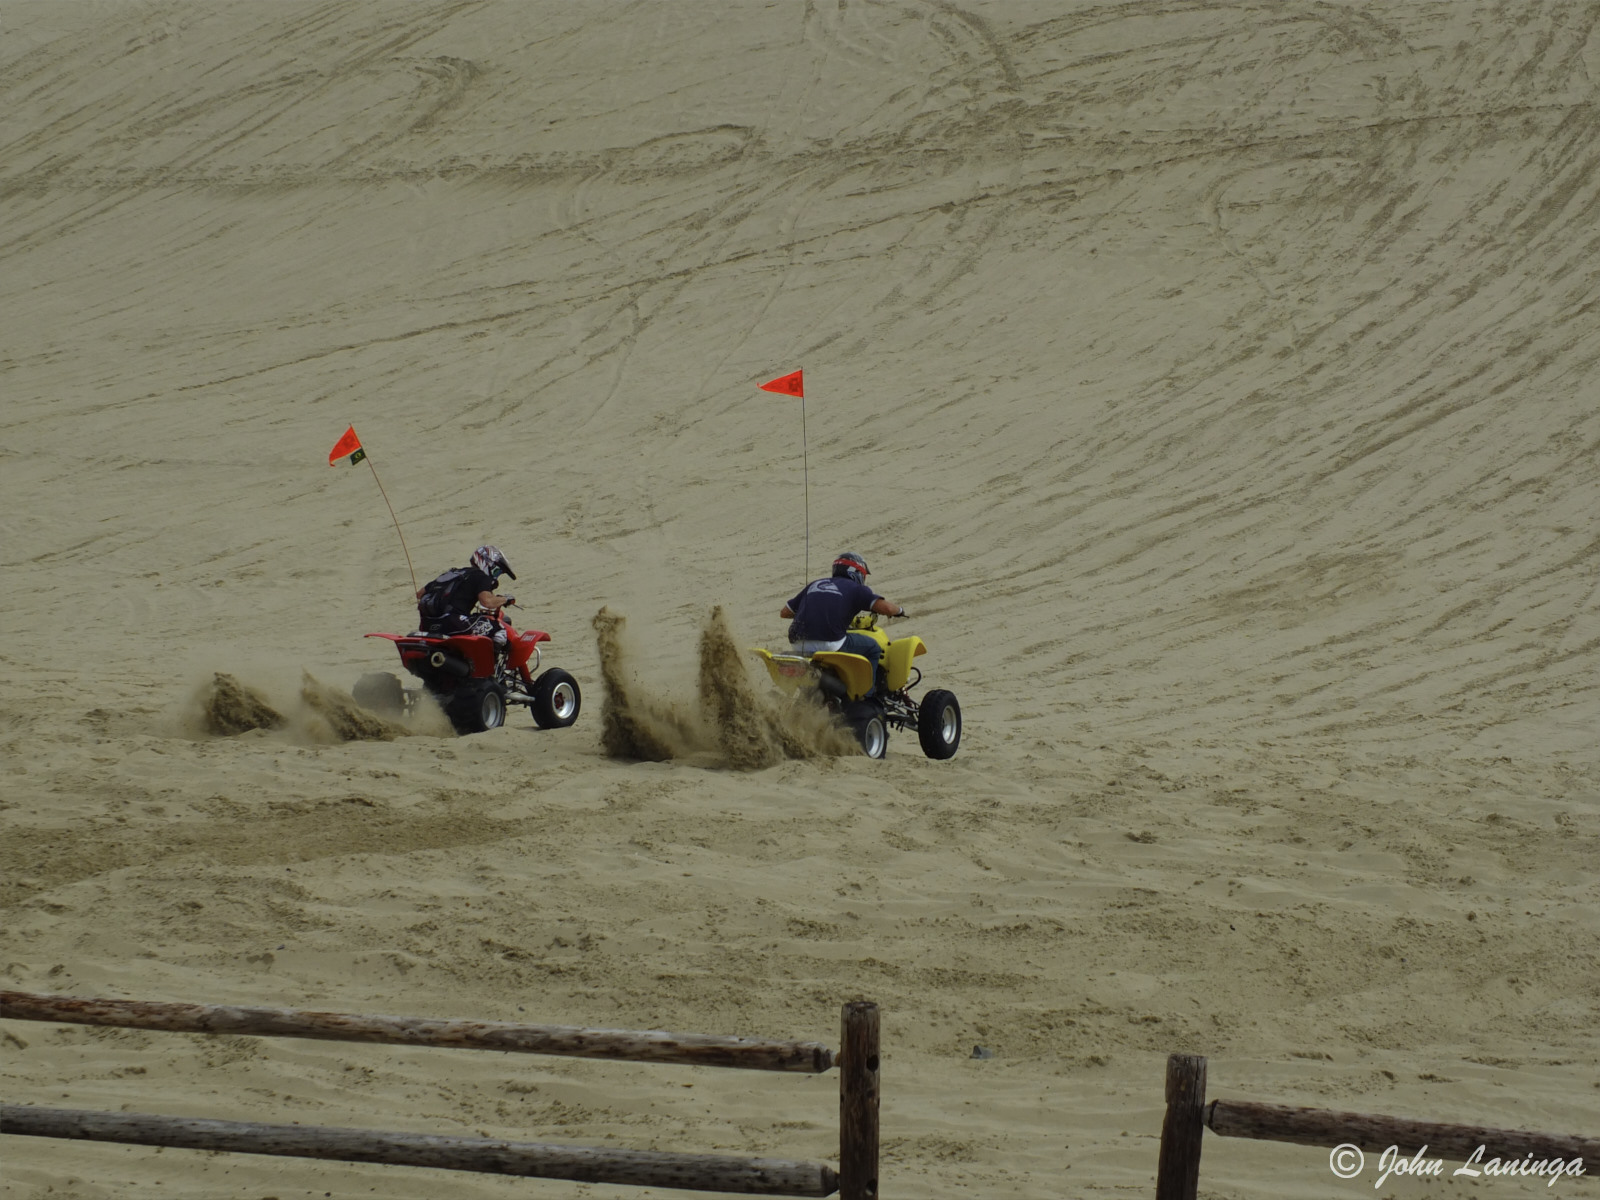 Sand buggies on a climb